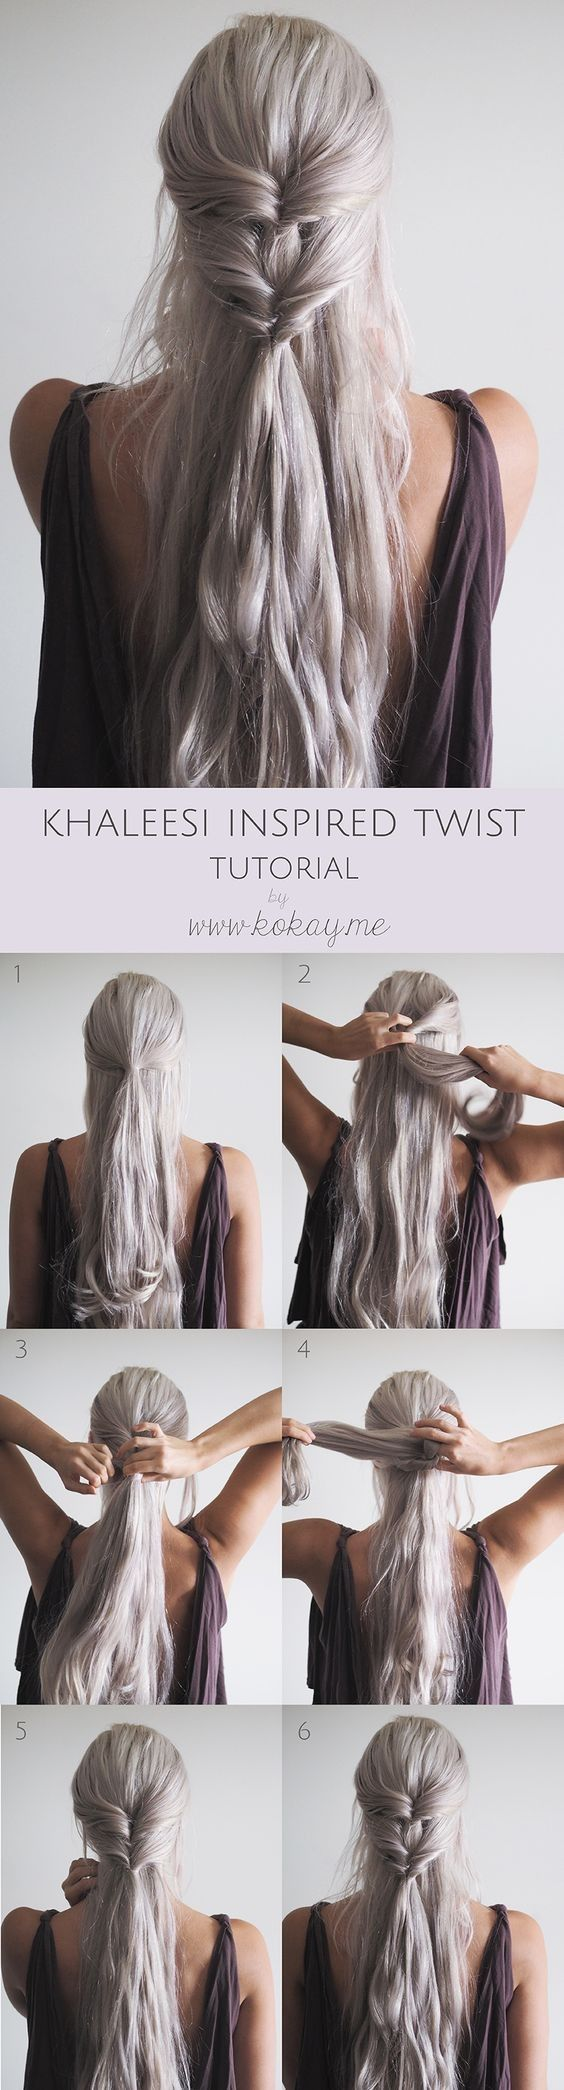 Popular on Pinterest: 'Game of Thrones' Khaleesi-Inspired Braids